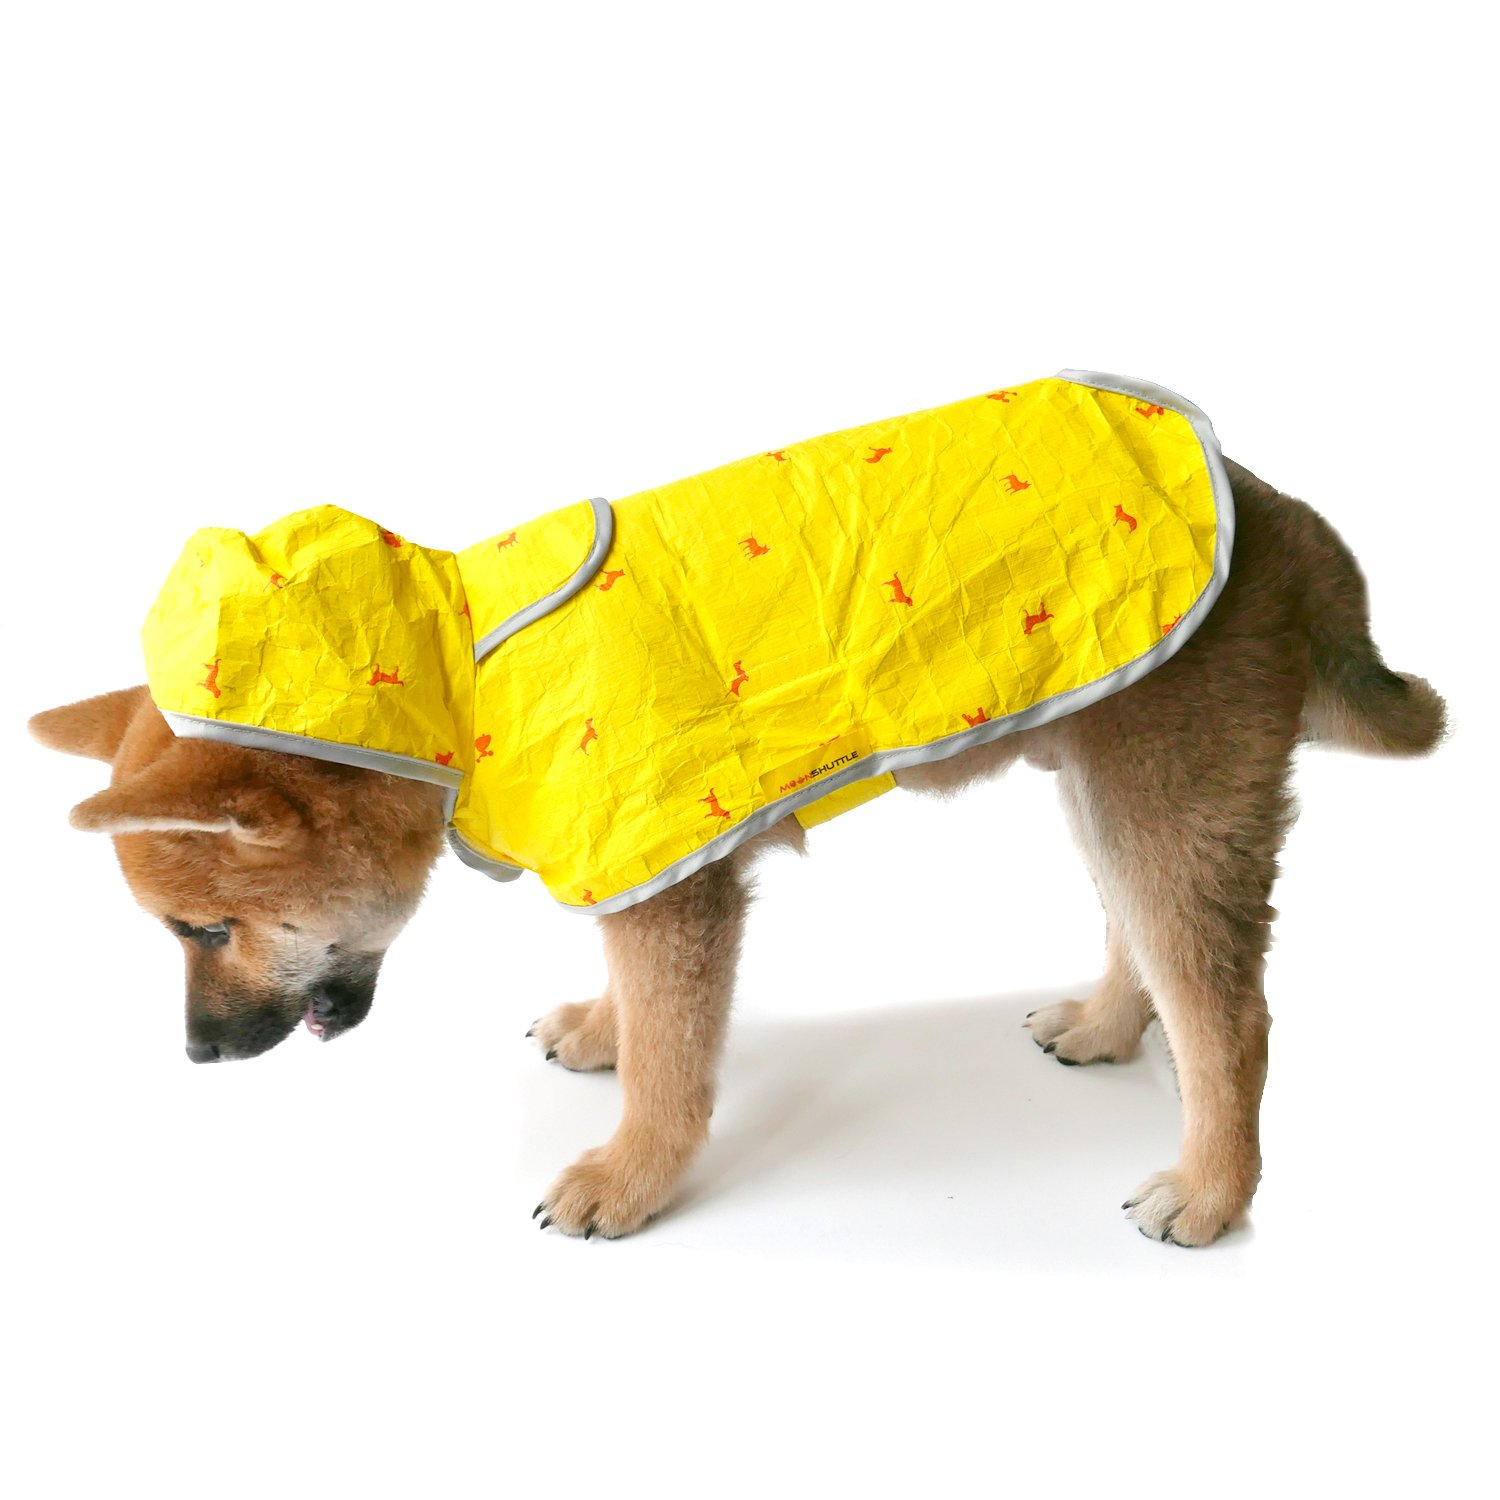 Moonshuttle Breathable Featherlight Dog Rain Coat Poncho made with DuPont Technology - Yellow (XL)